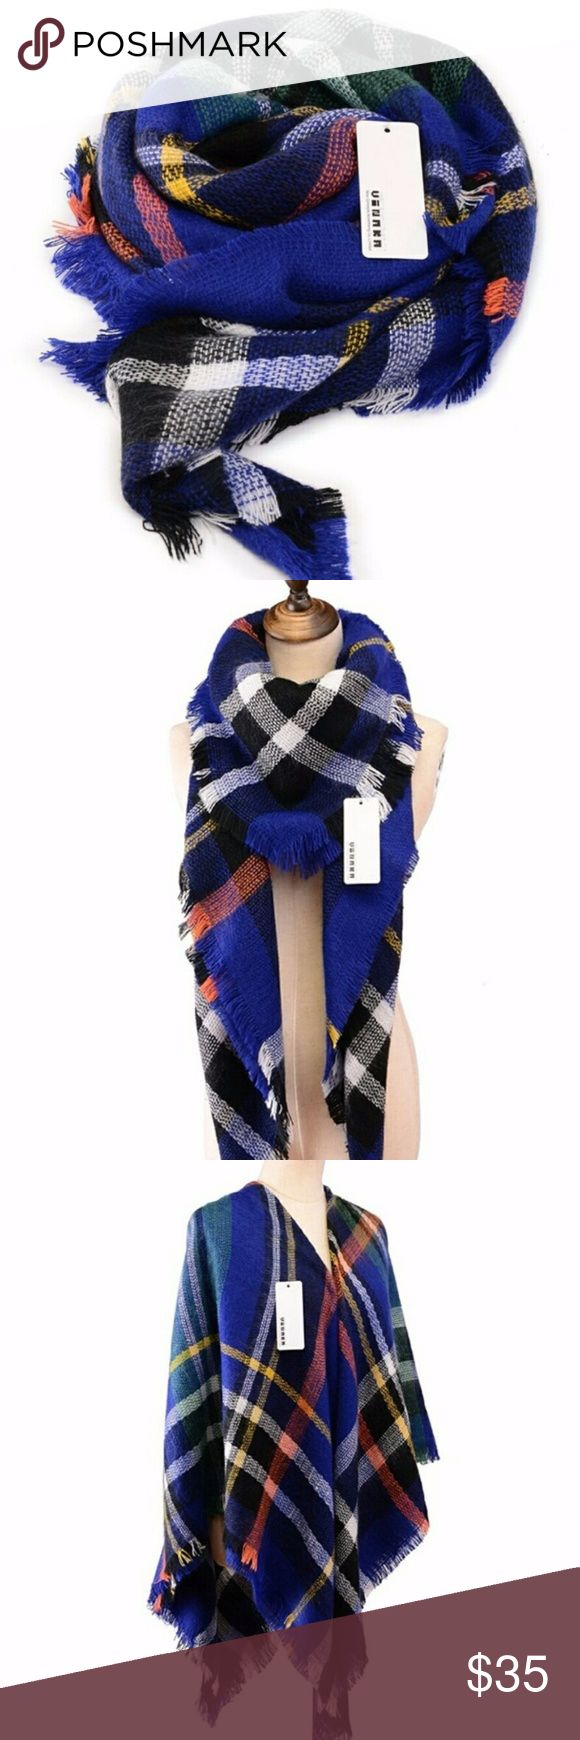 """Oversized royal blue tartan plaid blanket scarf Gorgeously bright colors, super soft acrylic material, warm and cozy. Perfect look for fall and winter. Measures 55"""" x 55"""".  100% Acrylic fibers make this scarf unique, high quality, soft and super warm an cozy. Makes a perfect gift or flash of color to complete those fall fashion outfits. Make any dreary winter day a chance to show off your perfect new scarf! Feel free to make an offer! C.C. Boutique Accessories Scarves & Wraps"""